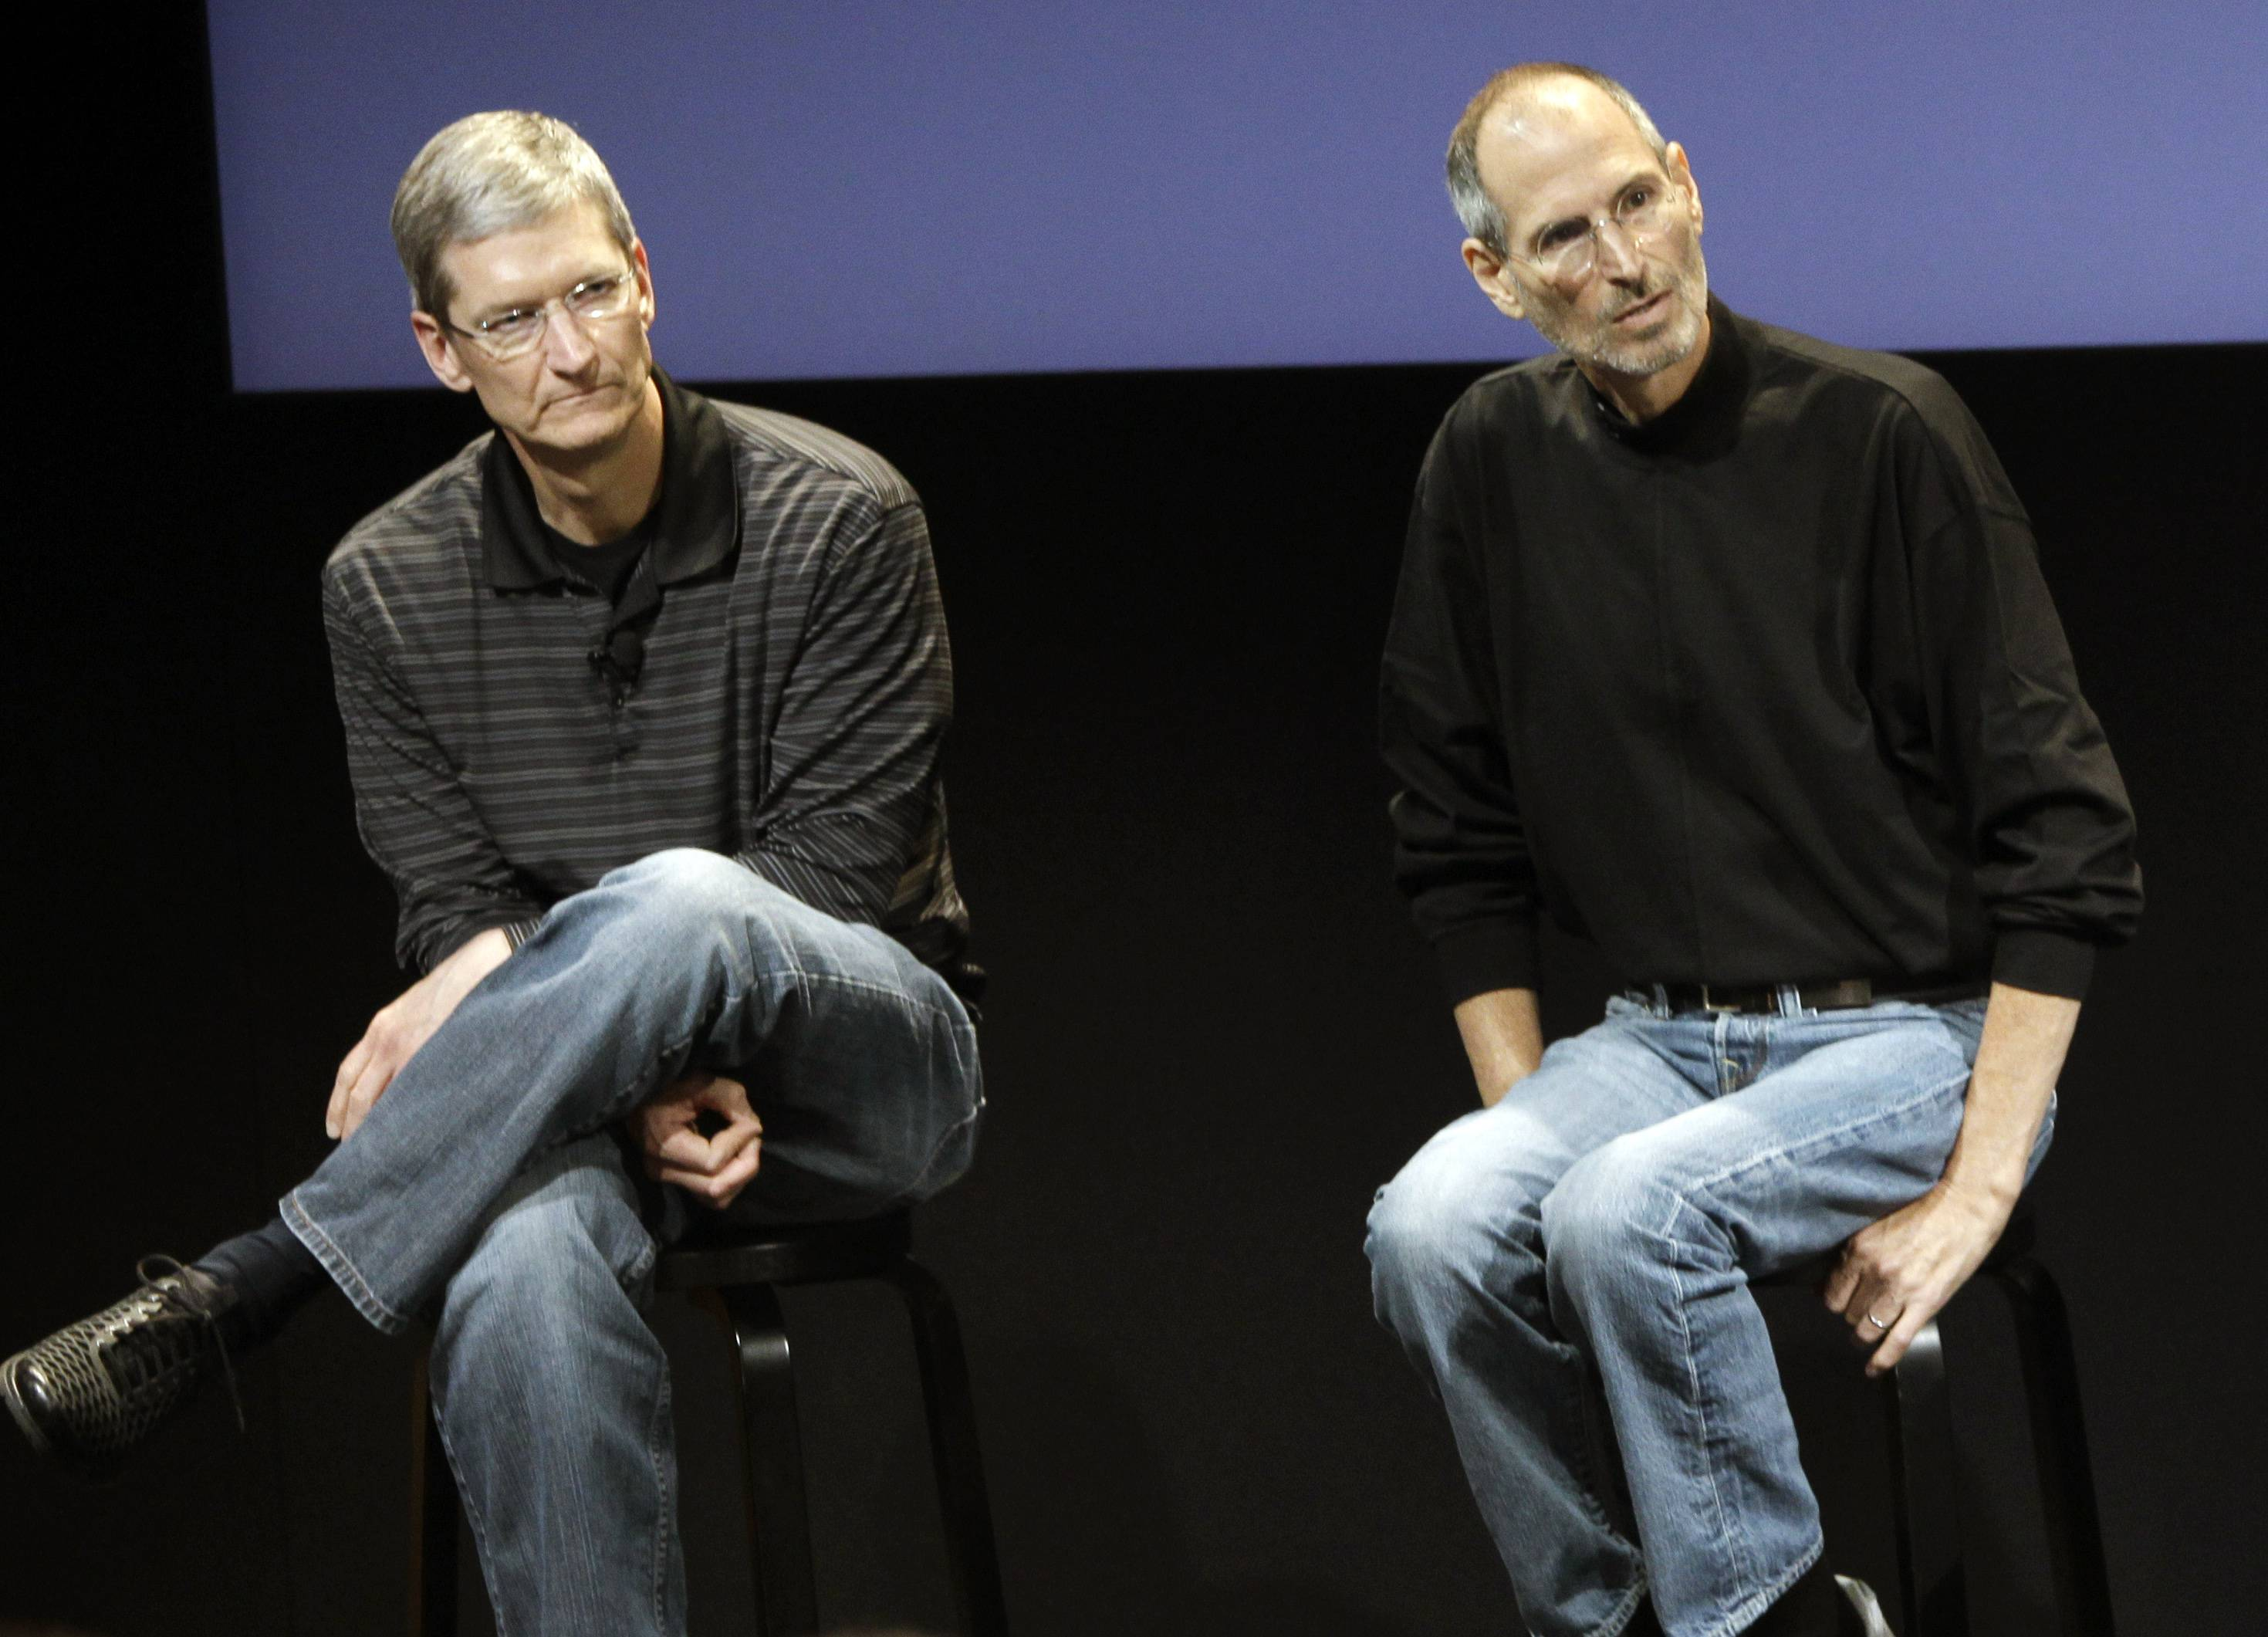 Tim Cook, left, and Steve Jobs lead a meeting at Apple in Cupertino, Calif. Since Jobs' death, Apple's pace of innovation has slowed.